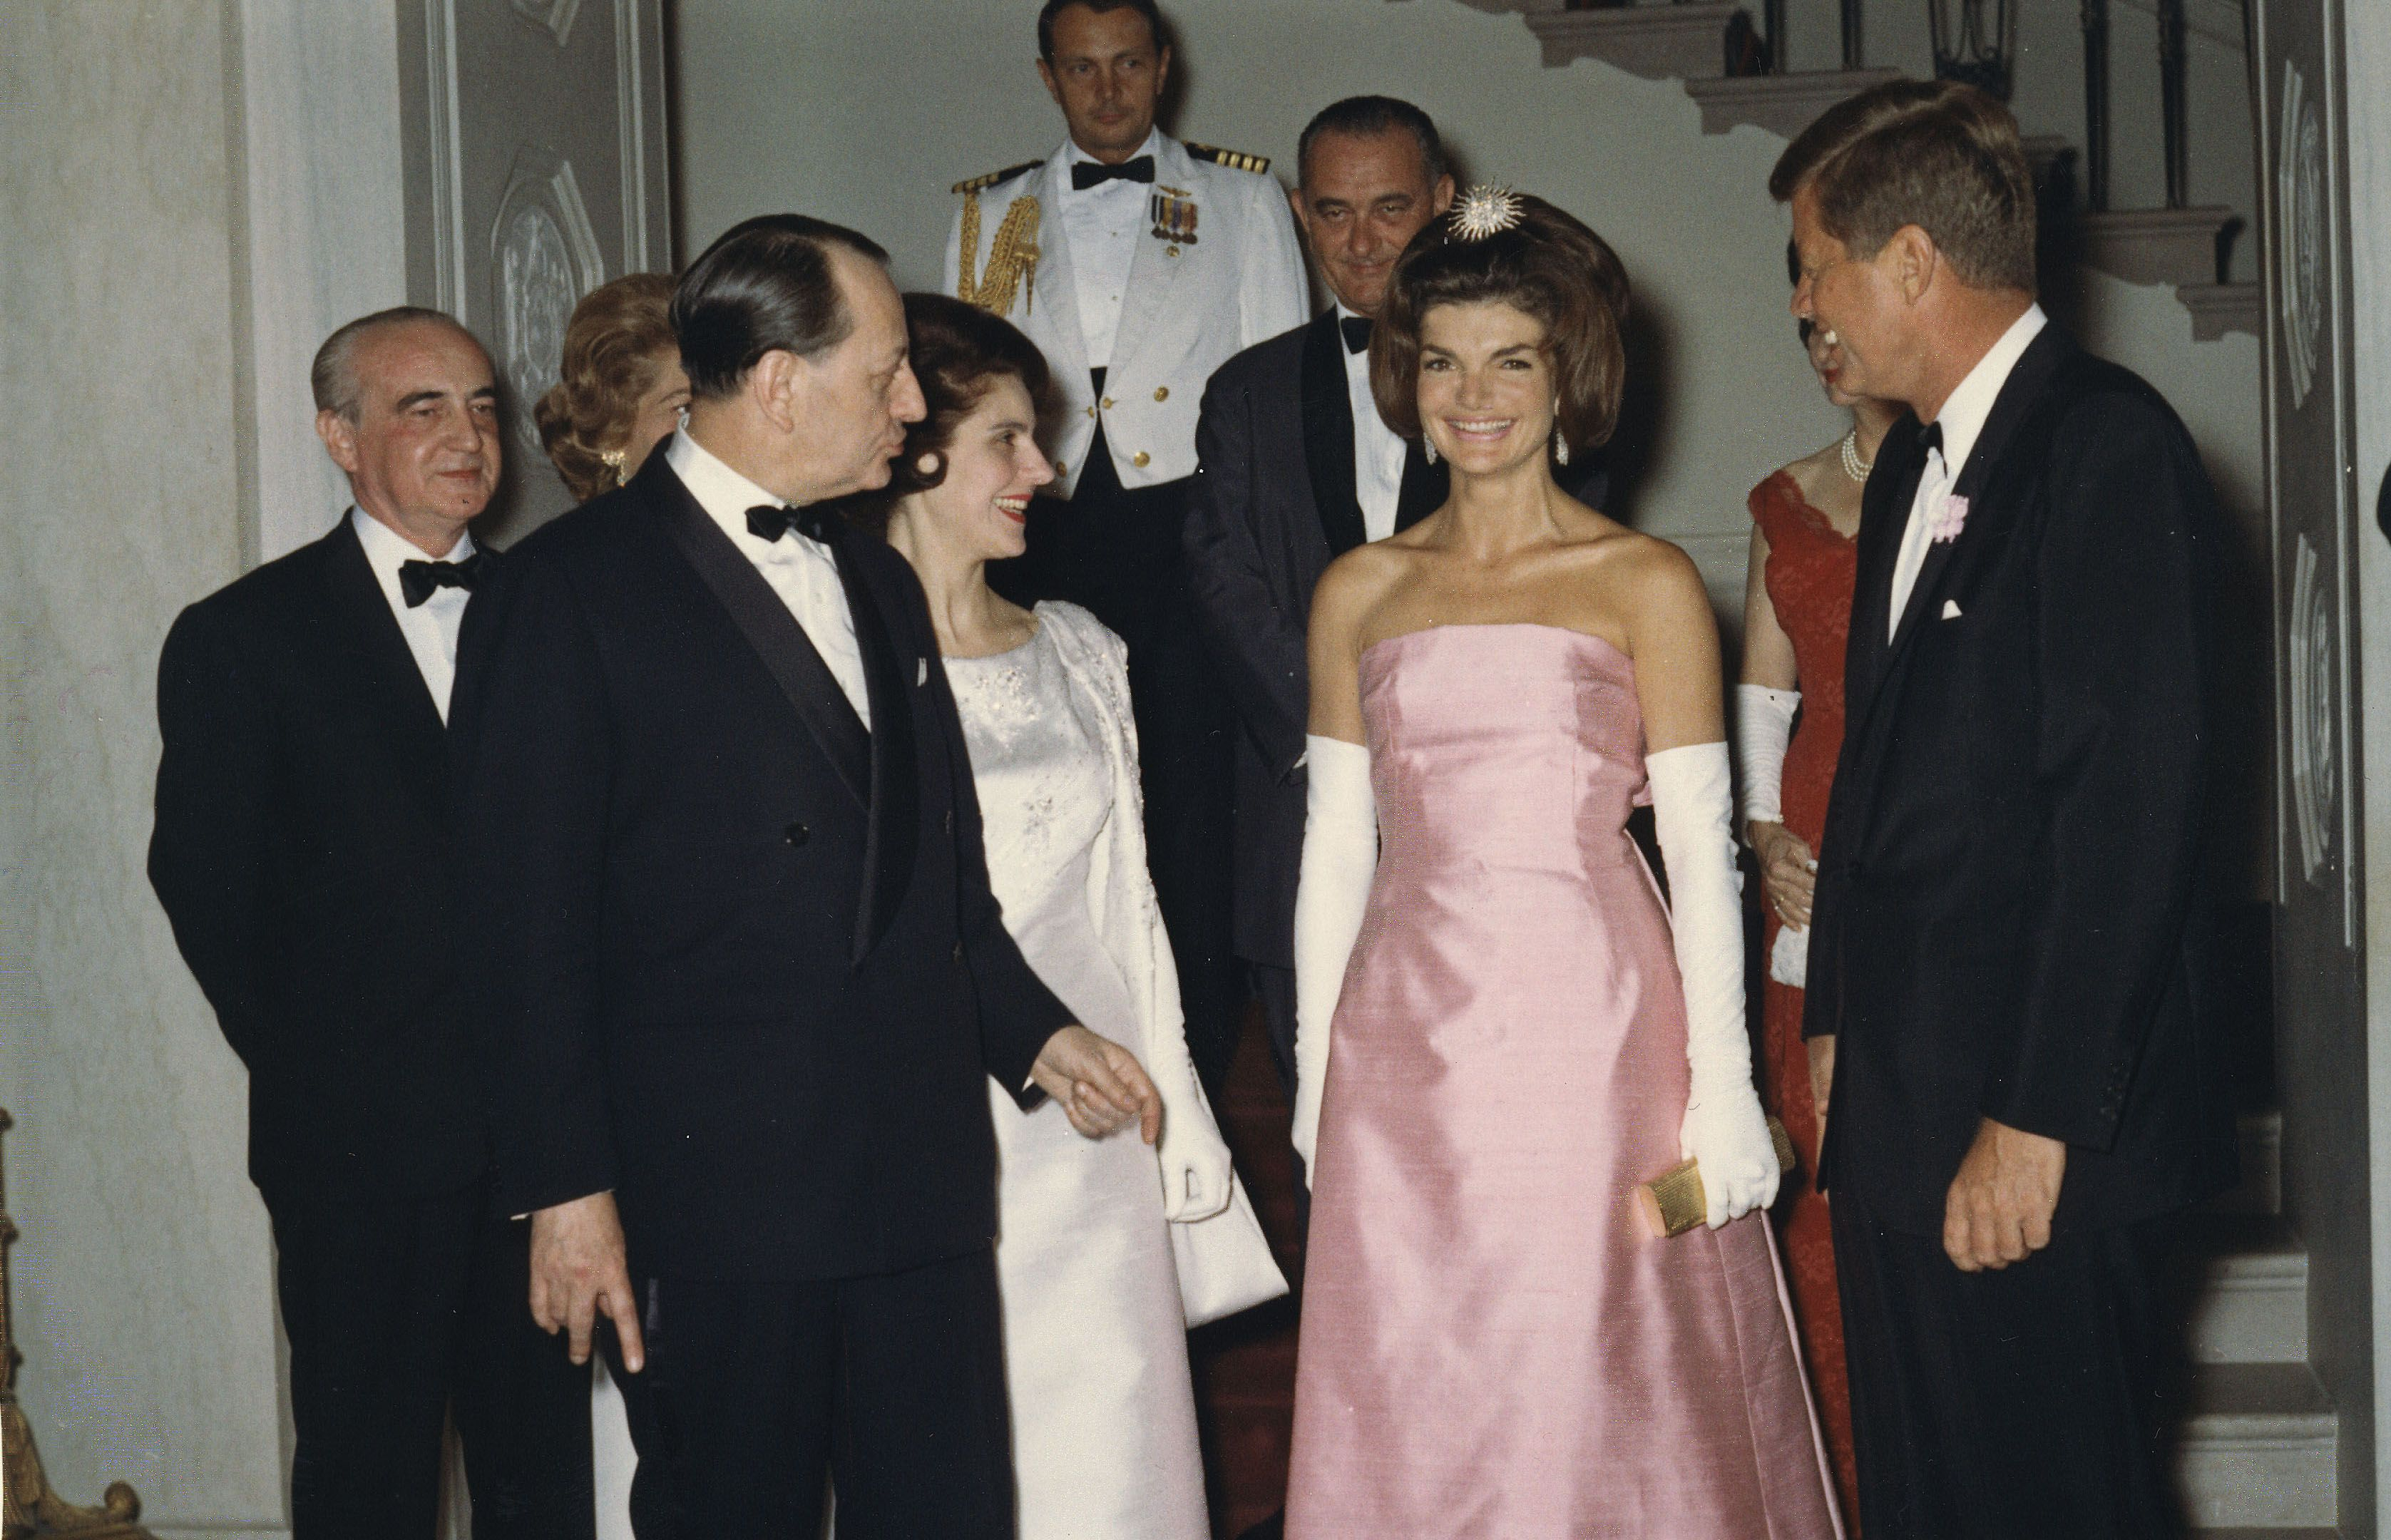 Jackie stuns in a pale pink strapless gown as she and the President greet guests for an official dinner at the White House.